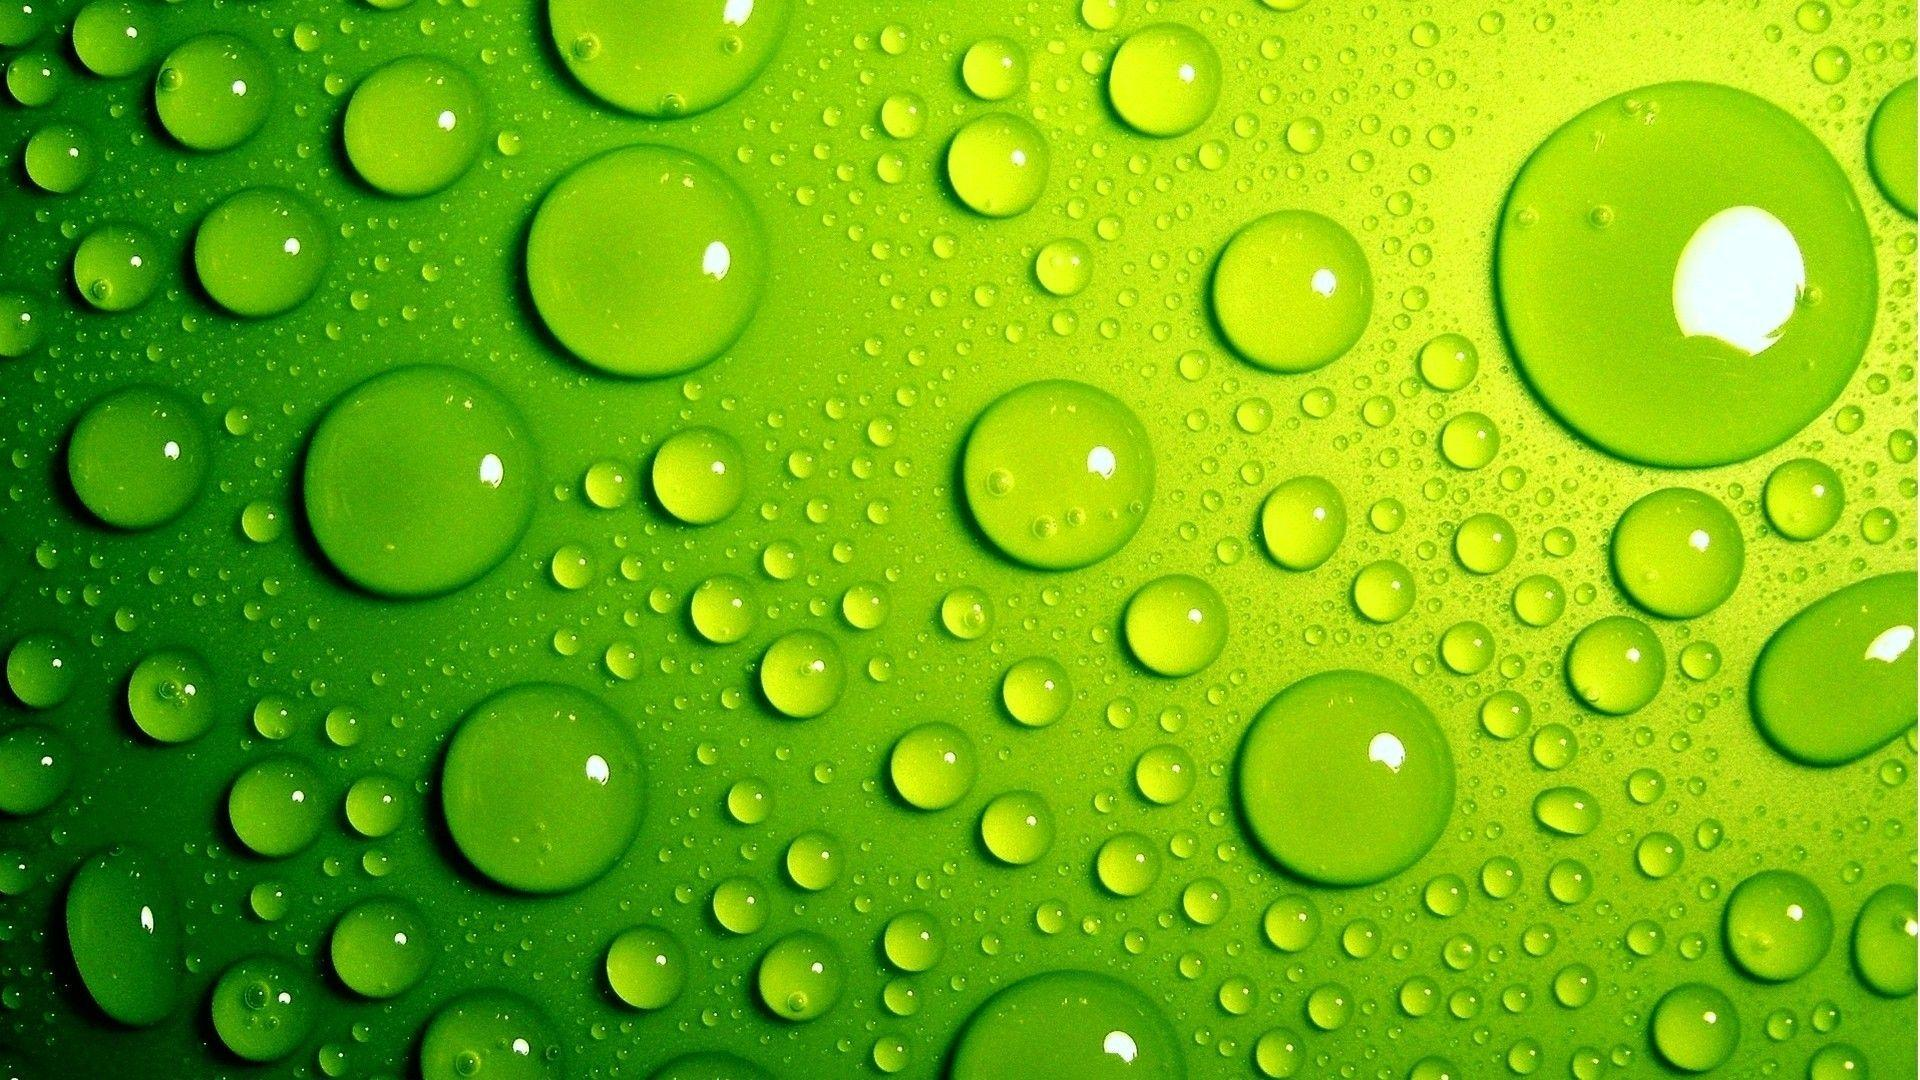 Wallpapers For > Hd Water Drop Wallpaper